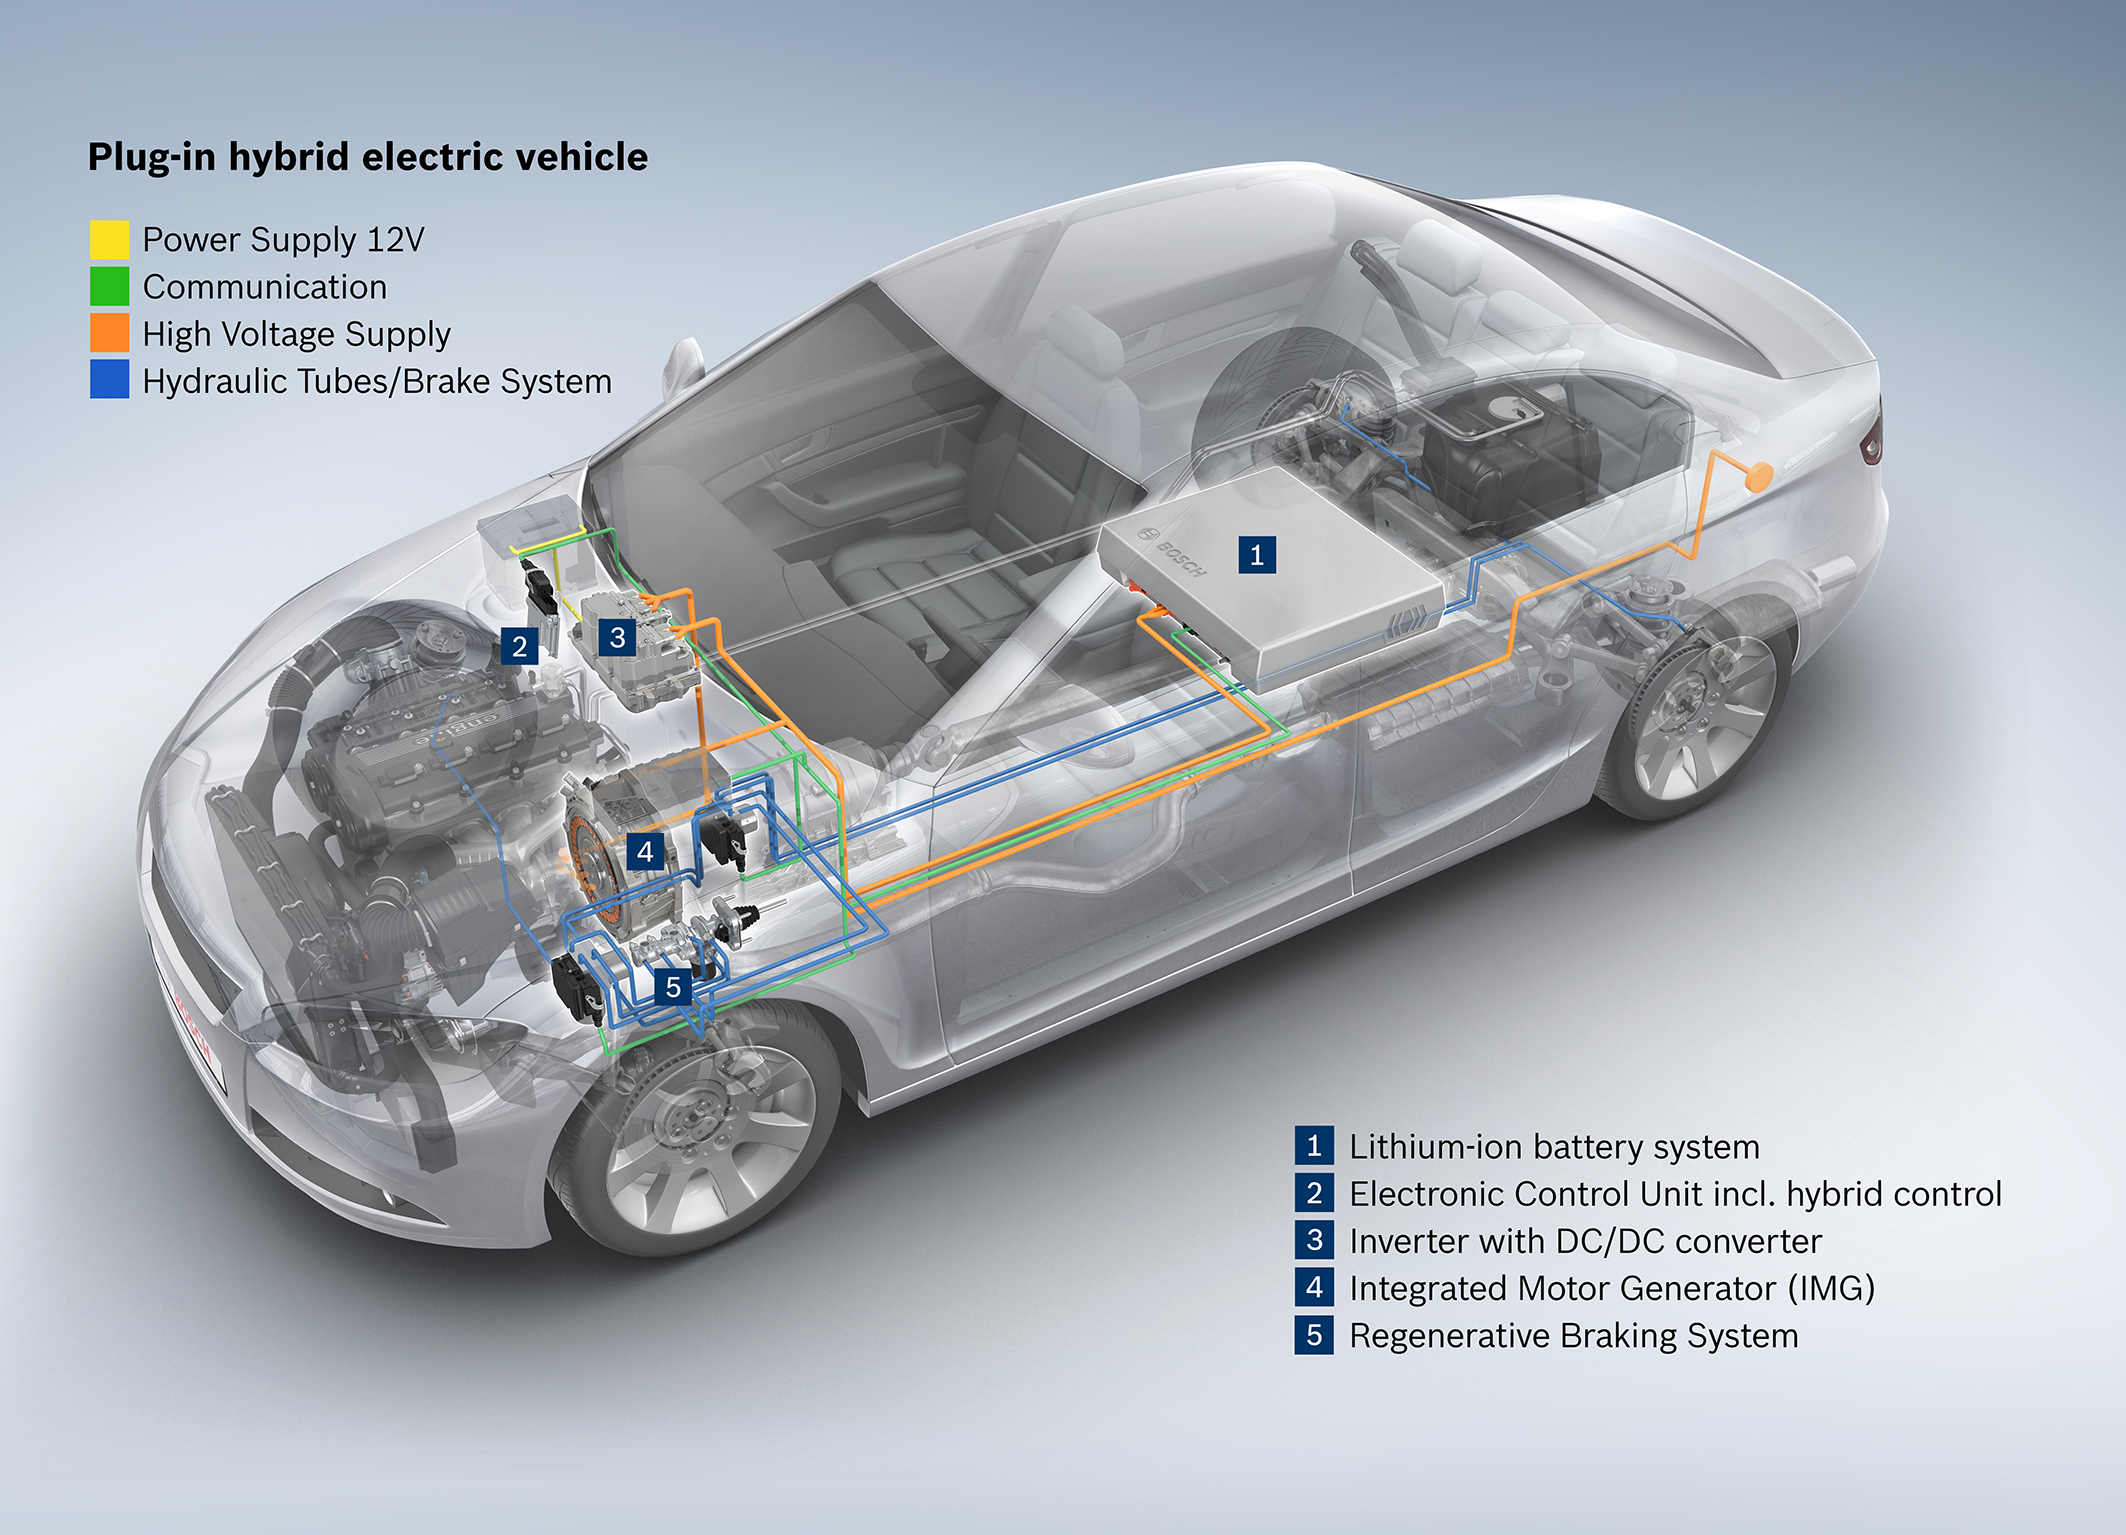 Gs Auto Sales >> Bosch powertrain: what will drive us in the future - Bosch Media Service